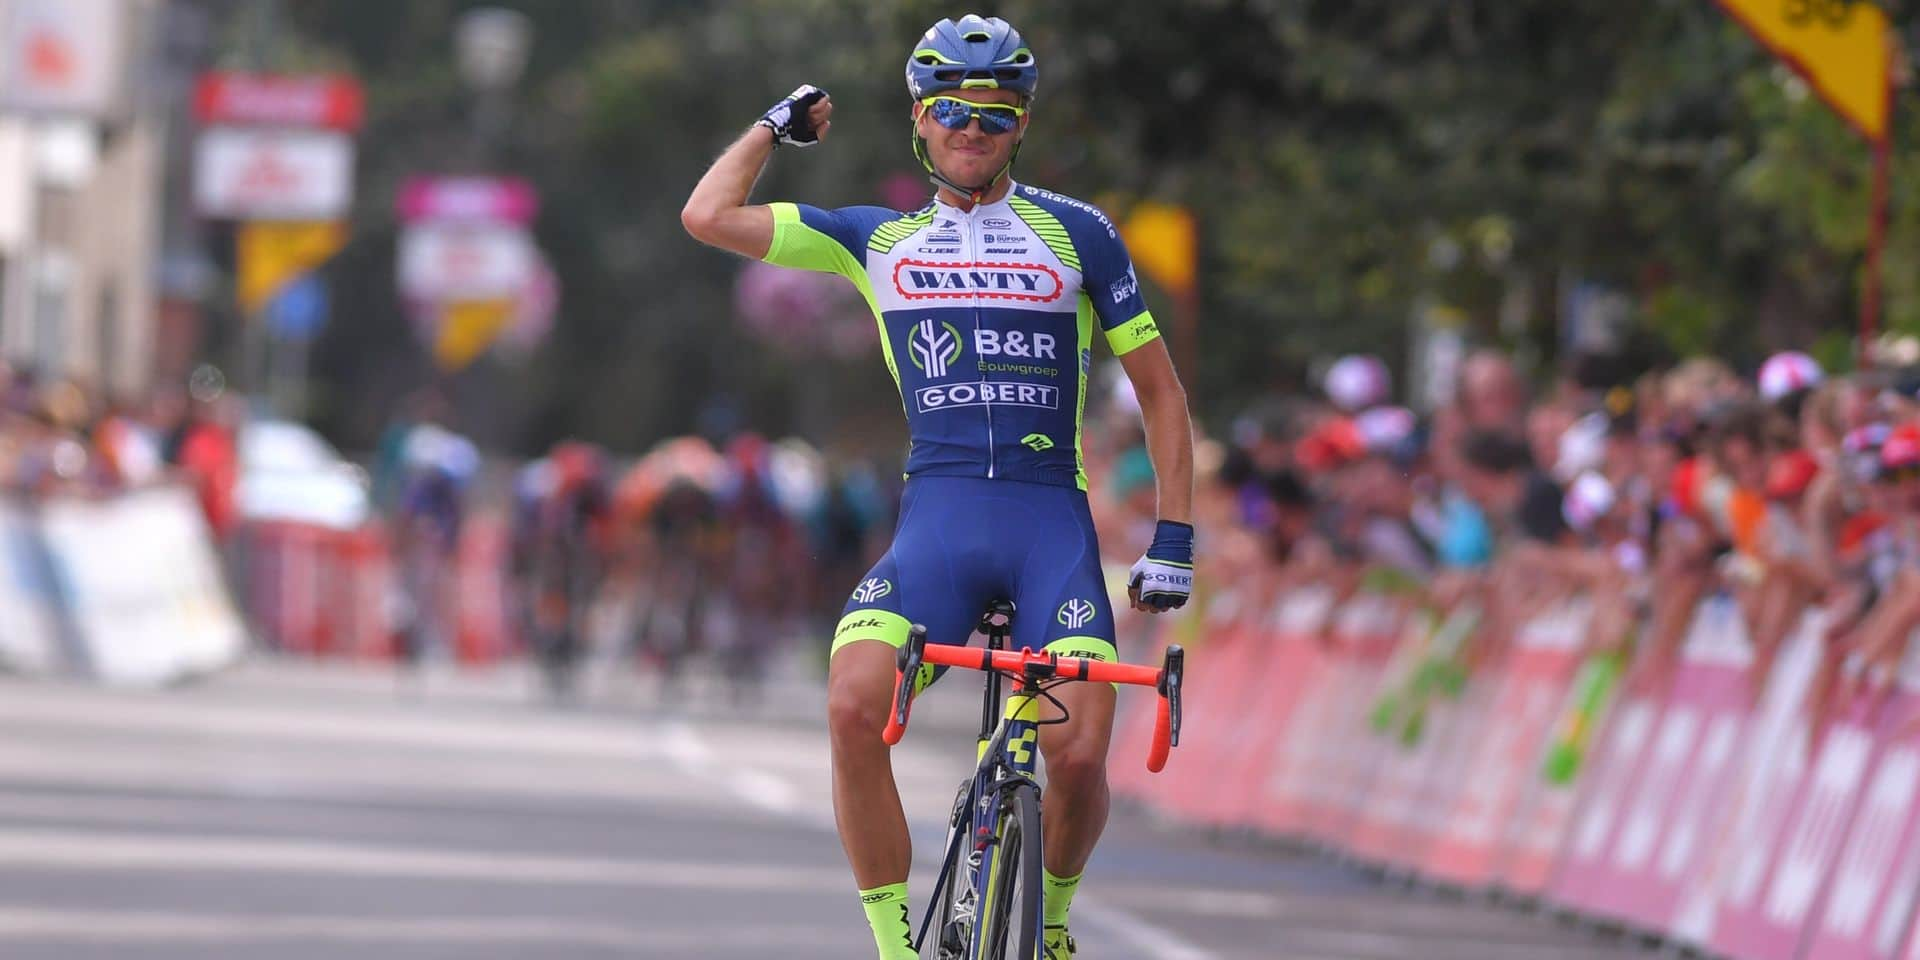 Norvegian Odd Christian Eiking of Wanty-Groupe Gobert celebrates as he crosses the finish line to win the third stage of the Tour De Wallonie cycling race, 169,2 km from Chimay to La Roche-en-Ardenne, on Monday 30 July 2018. BELGA PHOTO LUC CLAESSEN